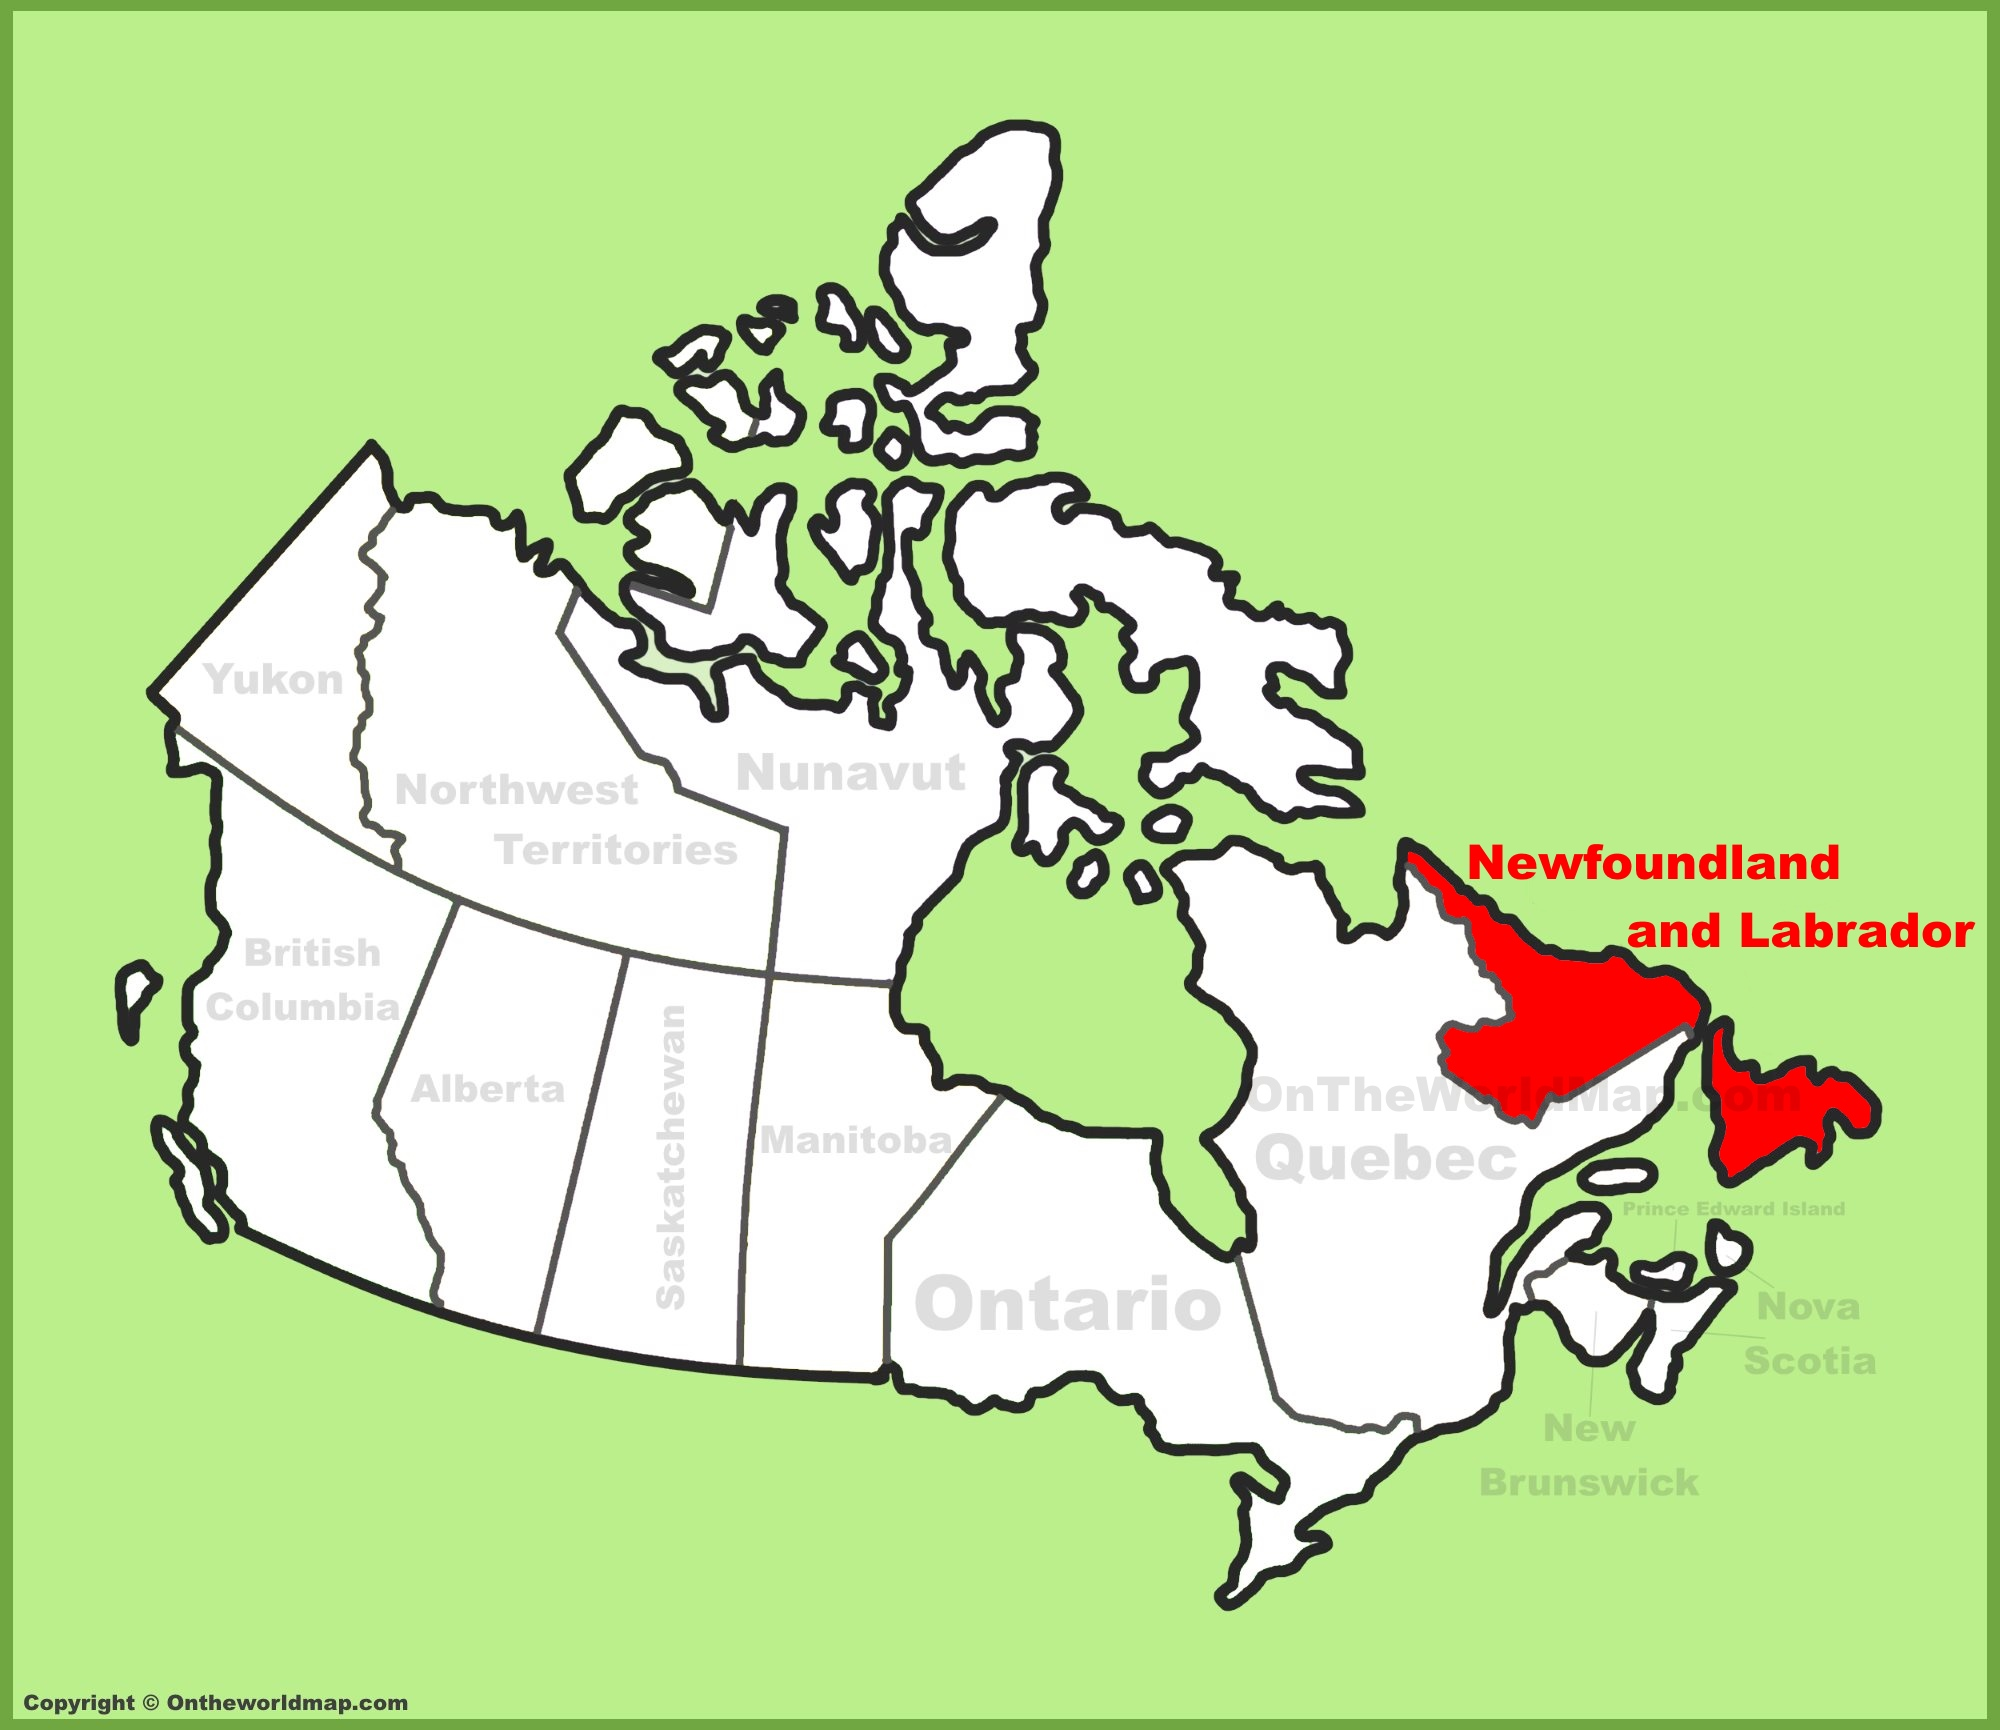 Newfoundland and Labrador Province Maps | Canada | Maps of